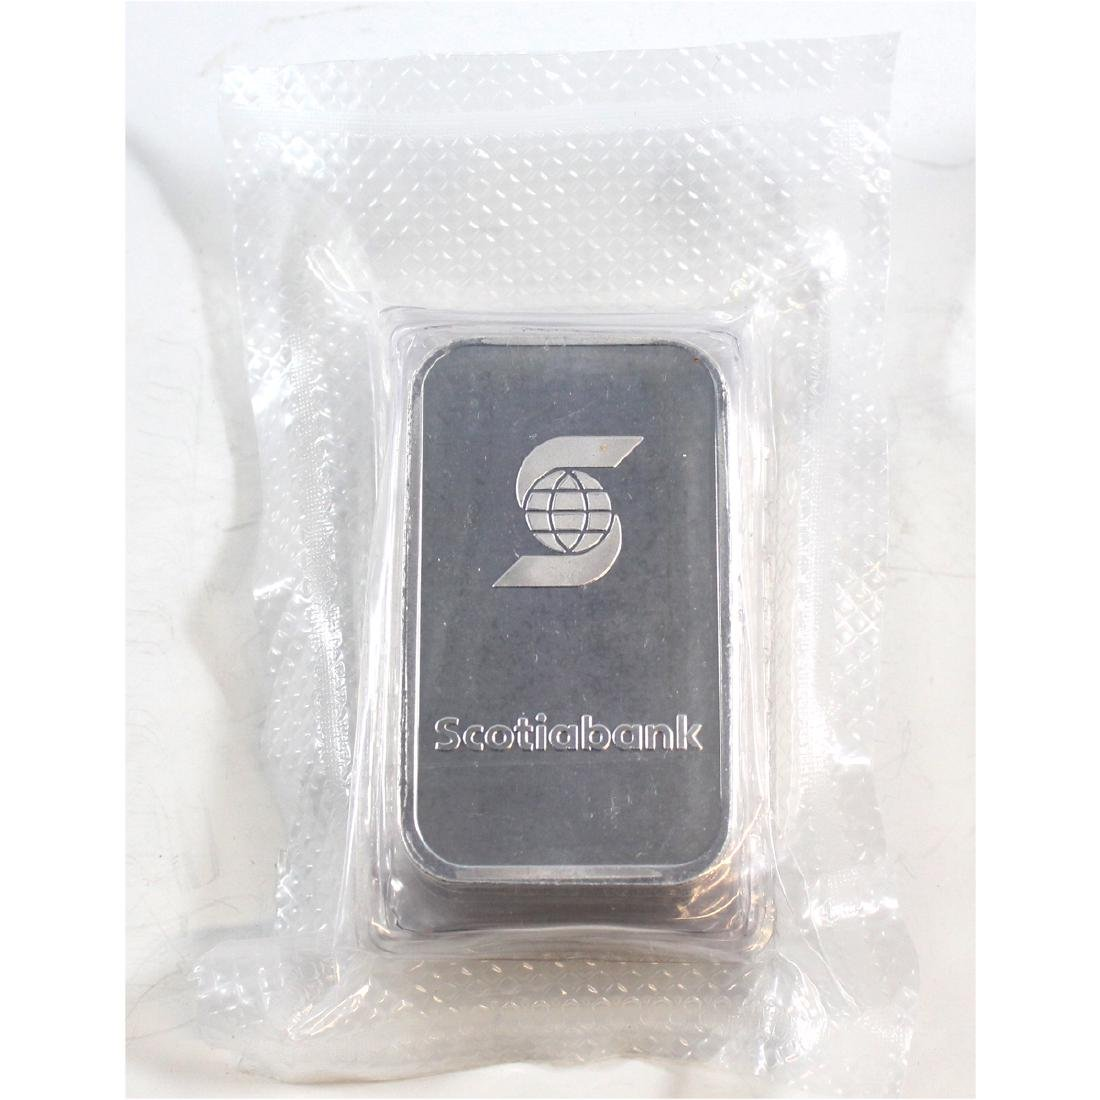 Scotiabank 1oz Fine Silver Bars Sealed in Original Wrap